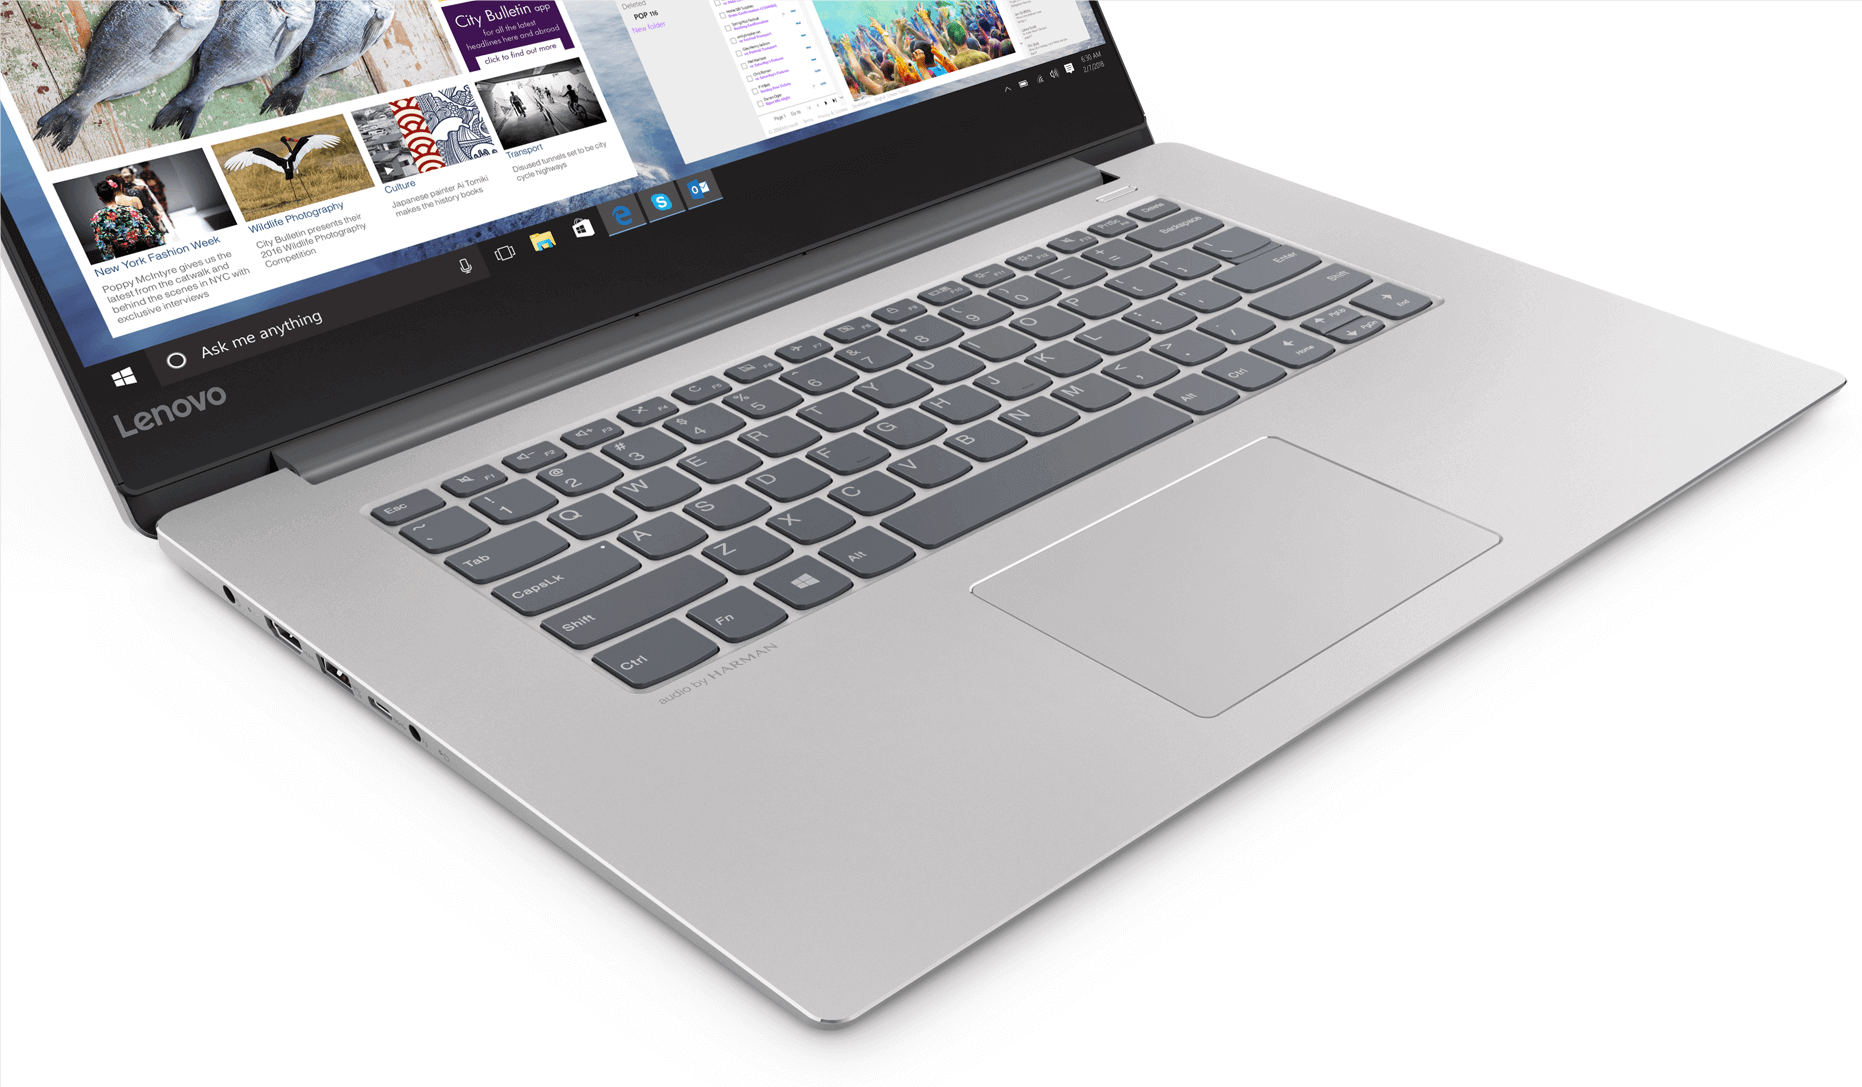 Lenovo refreshes affordable IdeaPad lineup with three new